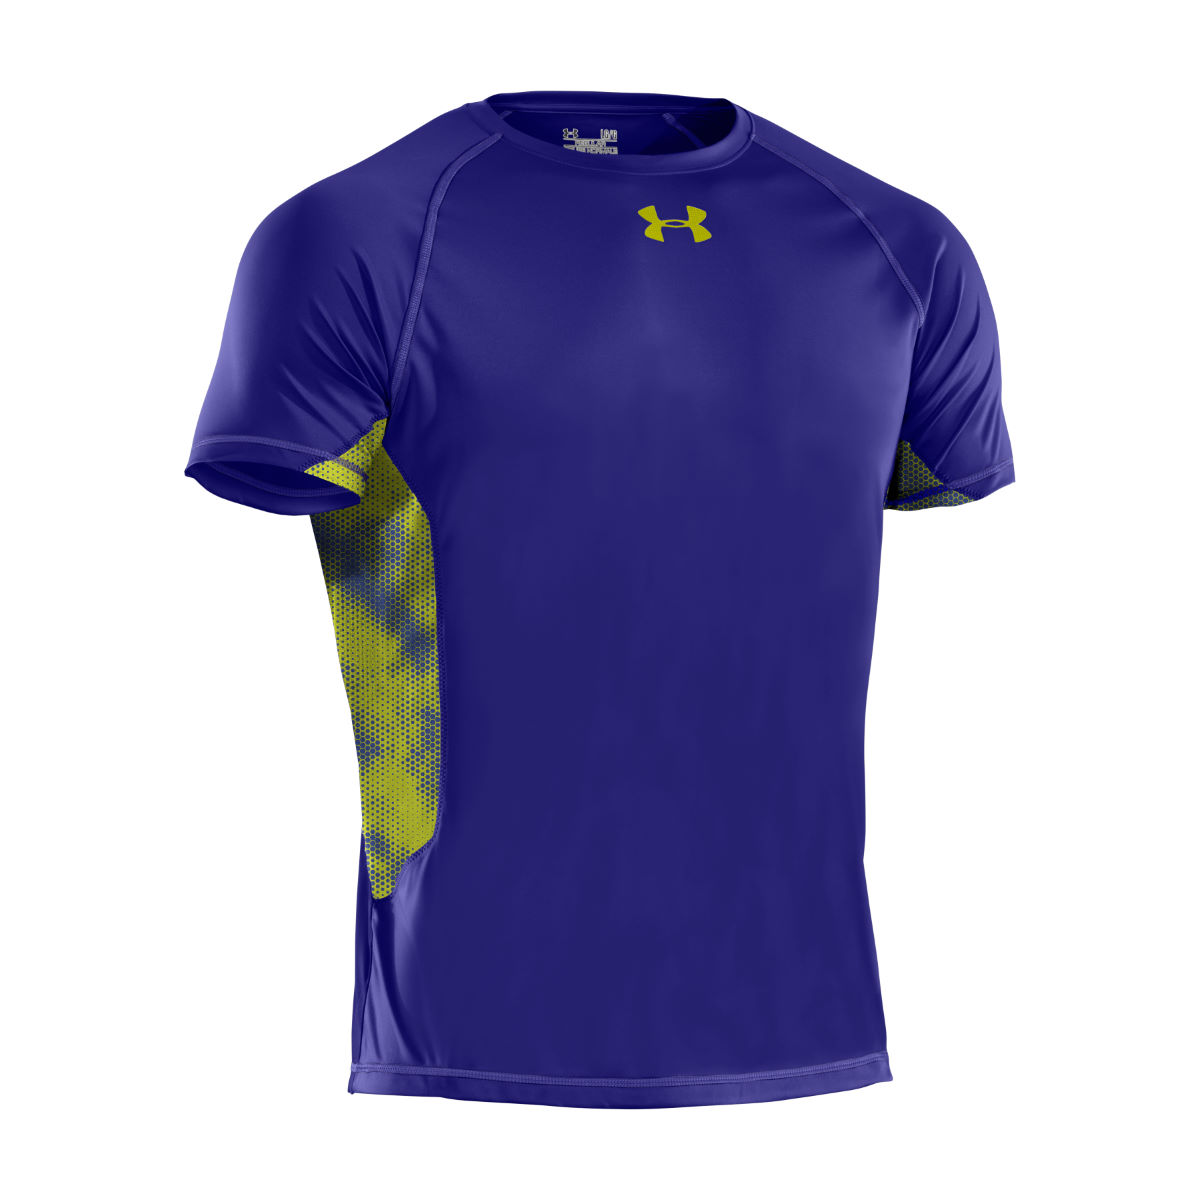 Under Armour Heat Gear Flyweight Short Sleeve Tee